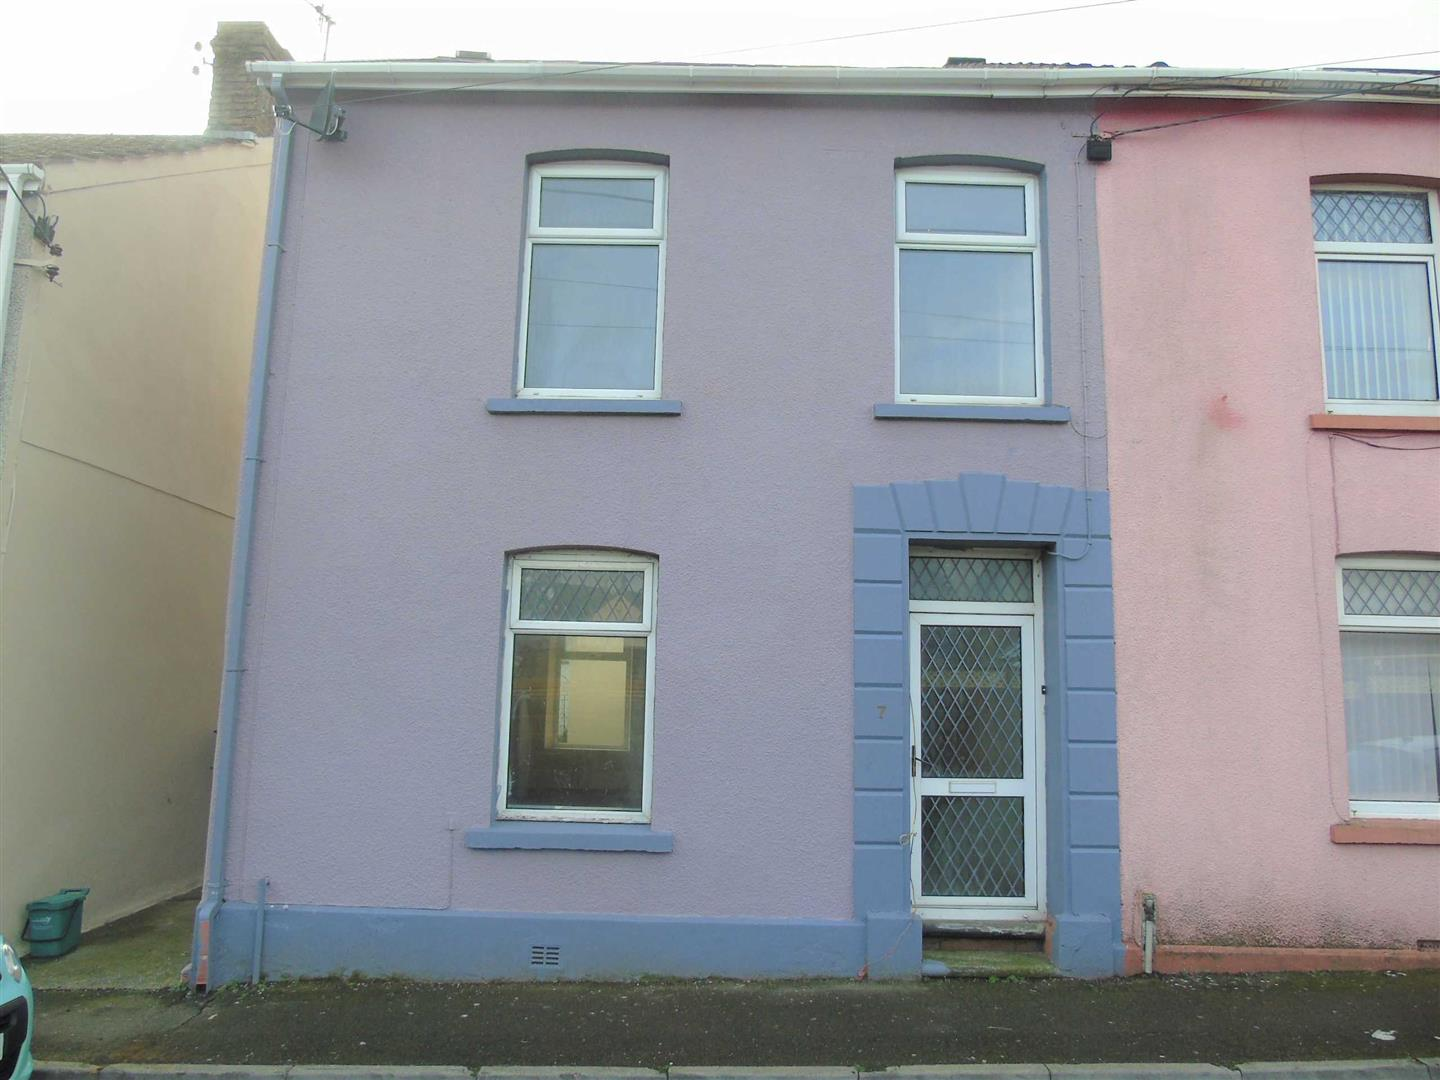 Williams Terrace, Burry Port, Llanelli, SA16 0PG